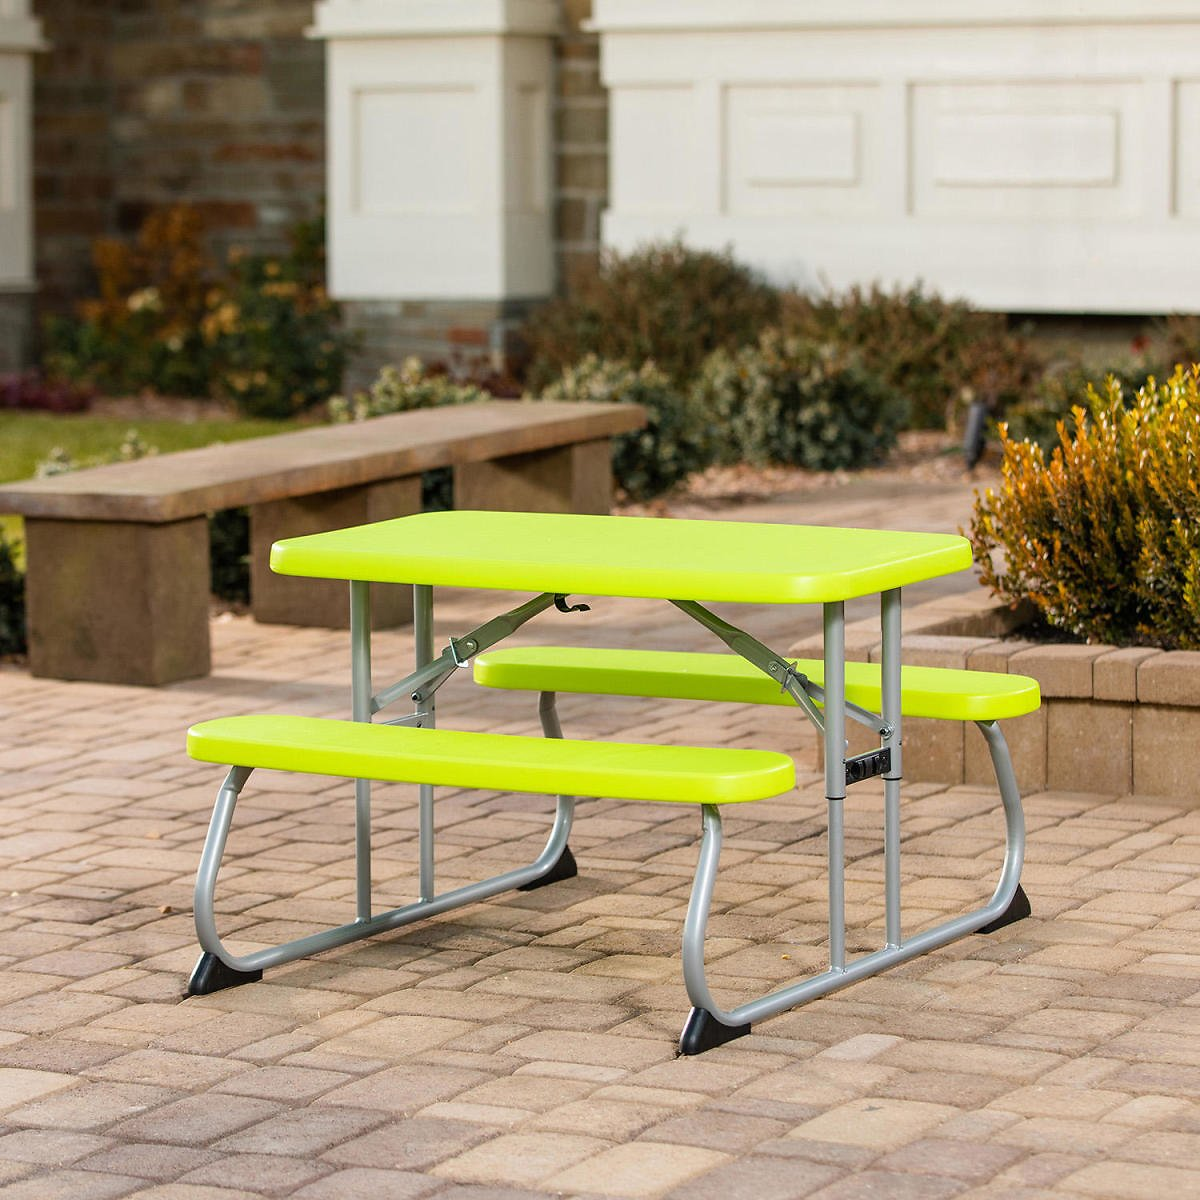 Lifetime Childrens' Picnic Table (In Store)